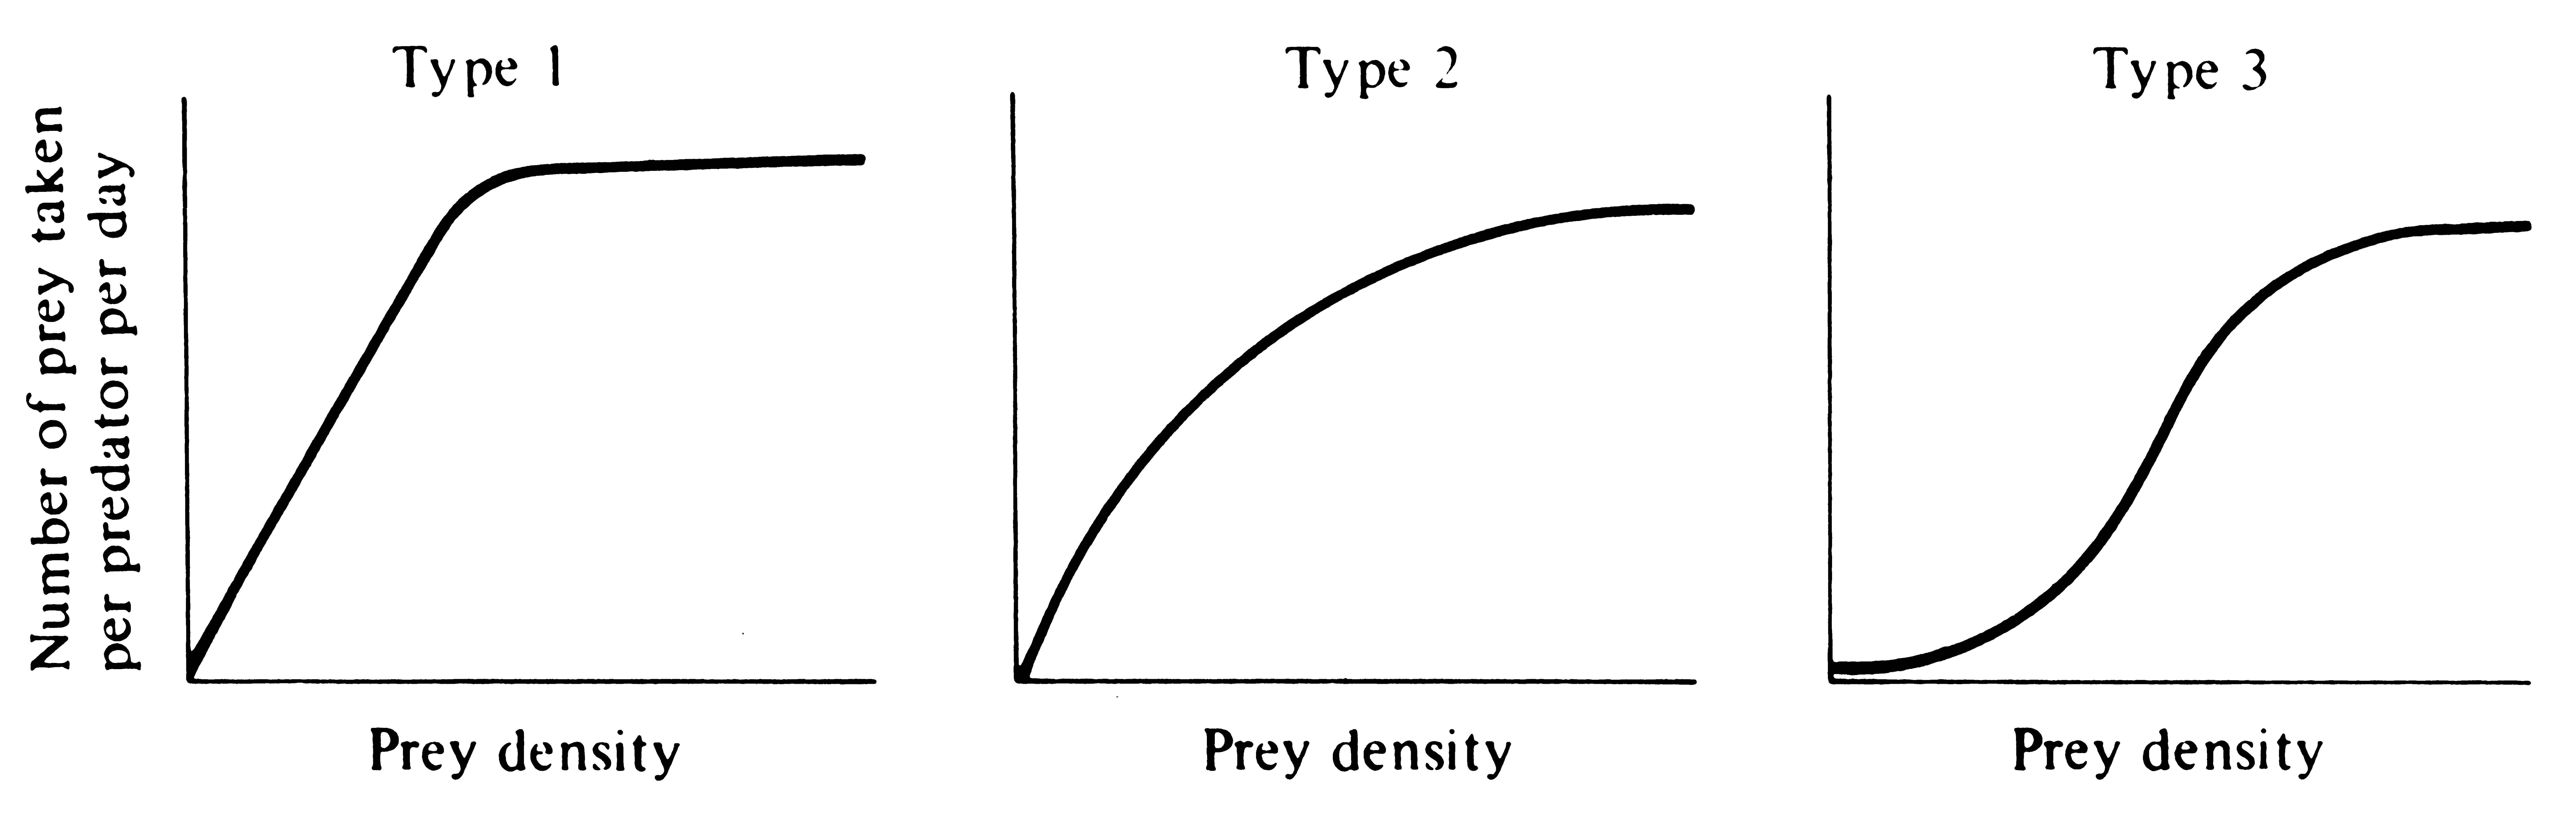 15 predation and parasitism figure 154 three types of functional responses after holling 1959a pooptronica